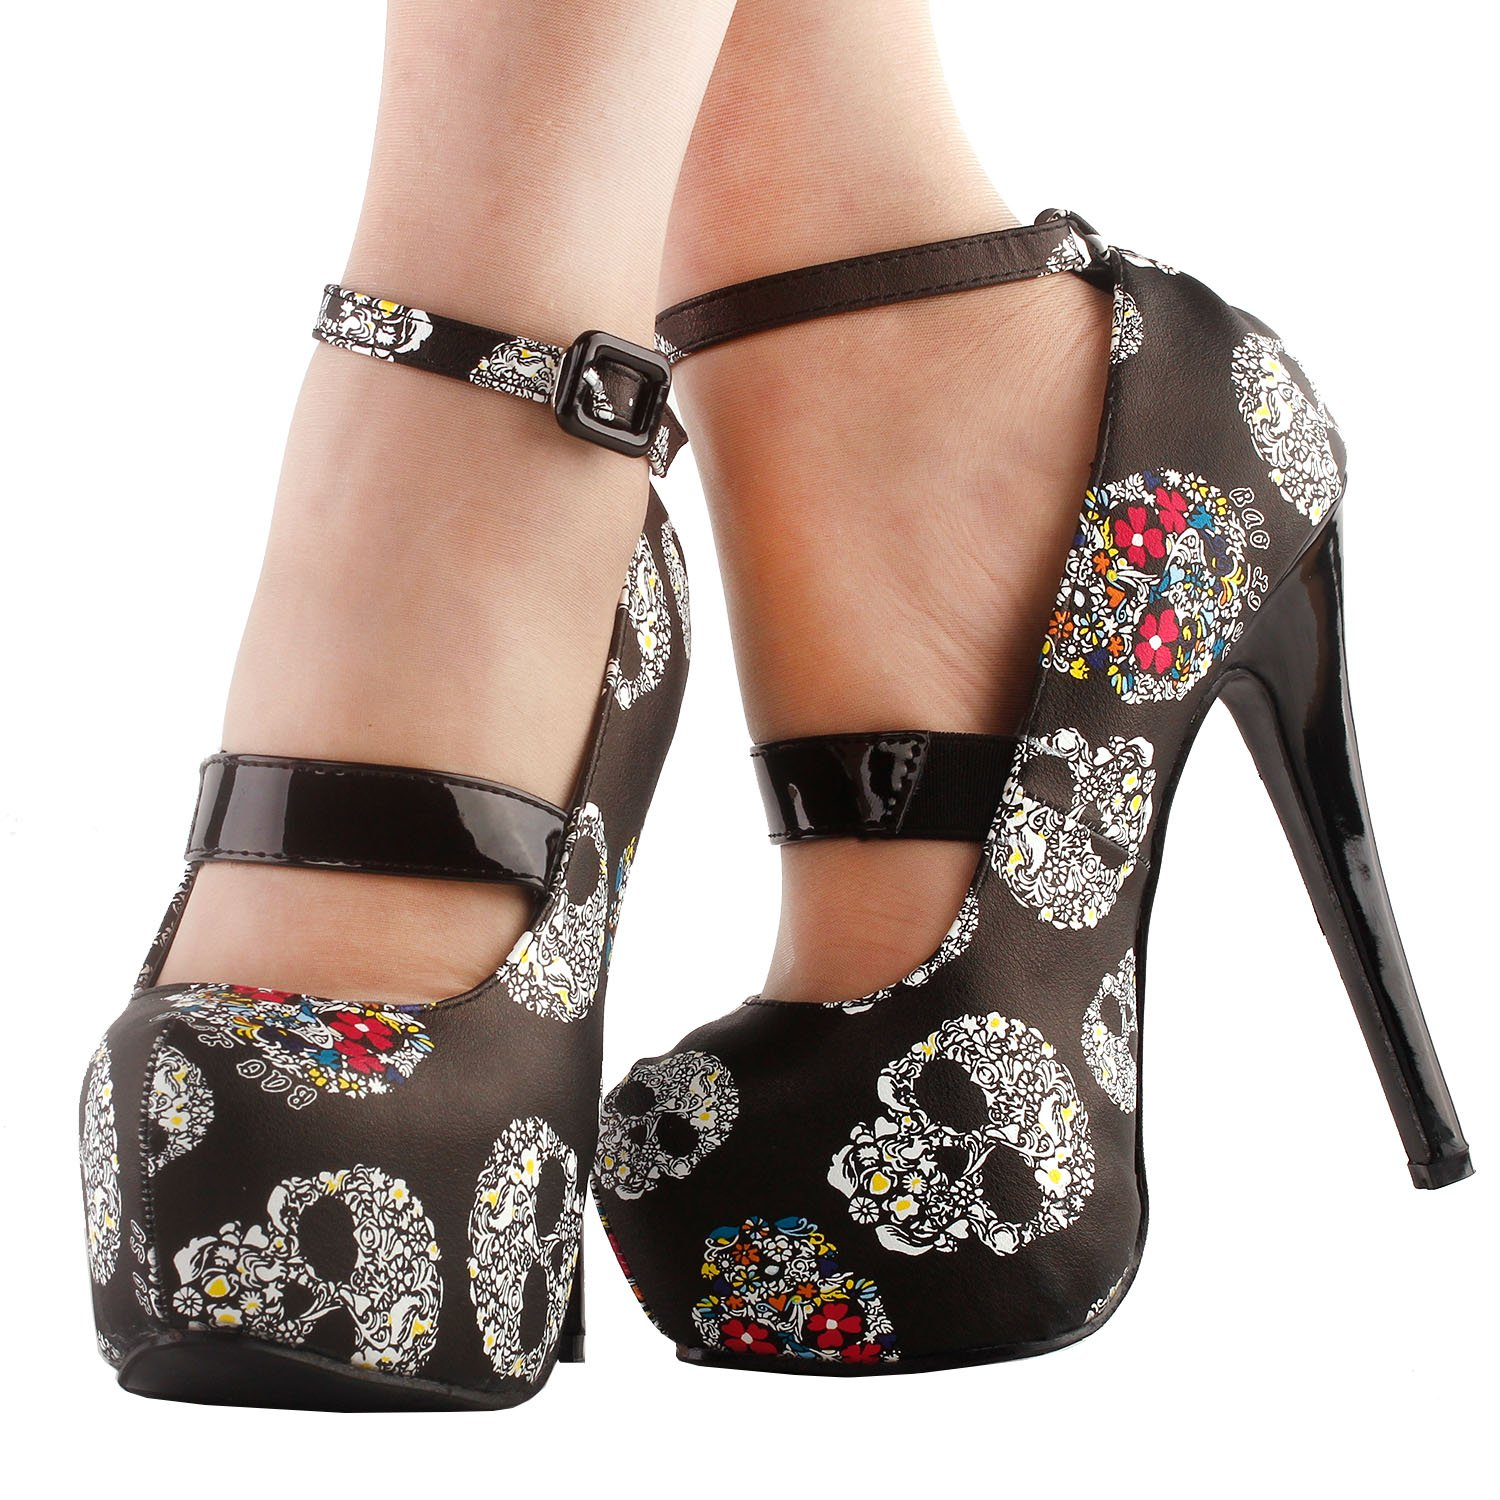 573691b53af SHOW STORY Women Sexy Skull Print Ankle Strap Platform Stiletto Heel Dress  Pumps,LF80873